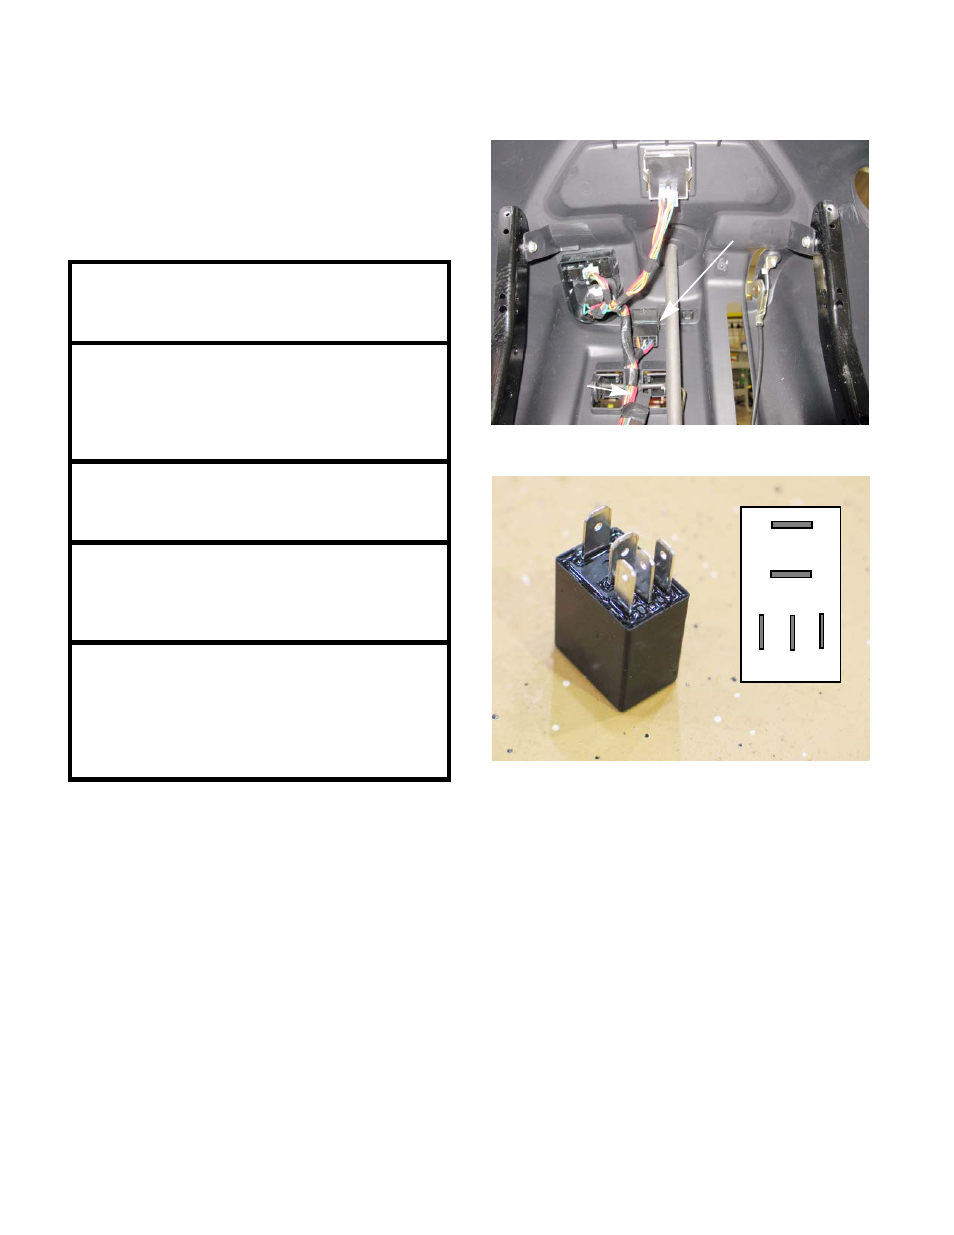 Pto Relay Cub Cadet Sltx1000 Series User Manual Page 156 278 Common Terminal In